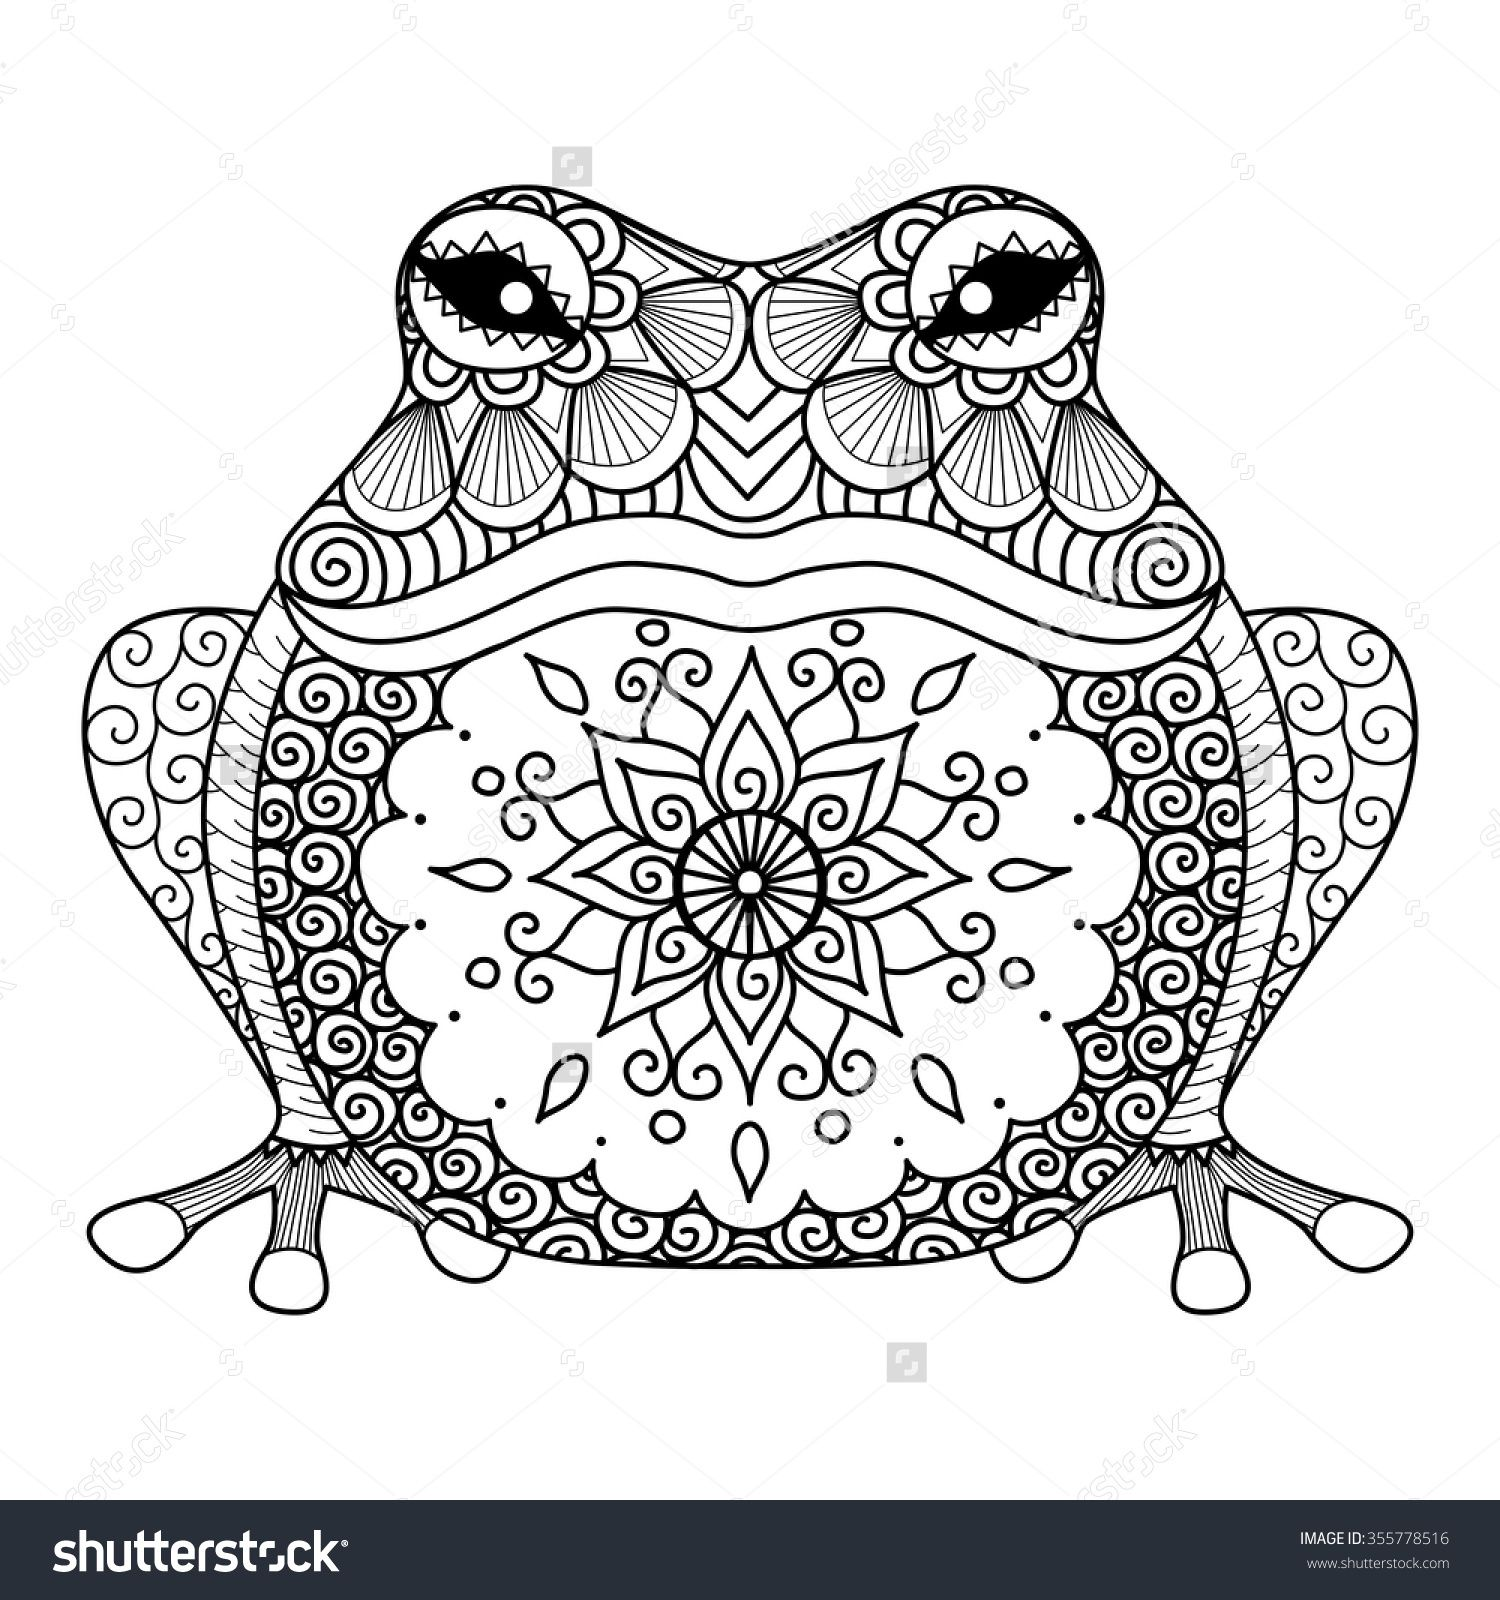 Hand drawn zentangle frog for coloring book for adult